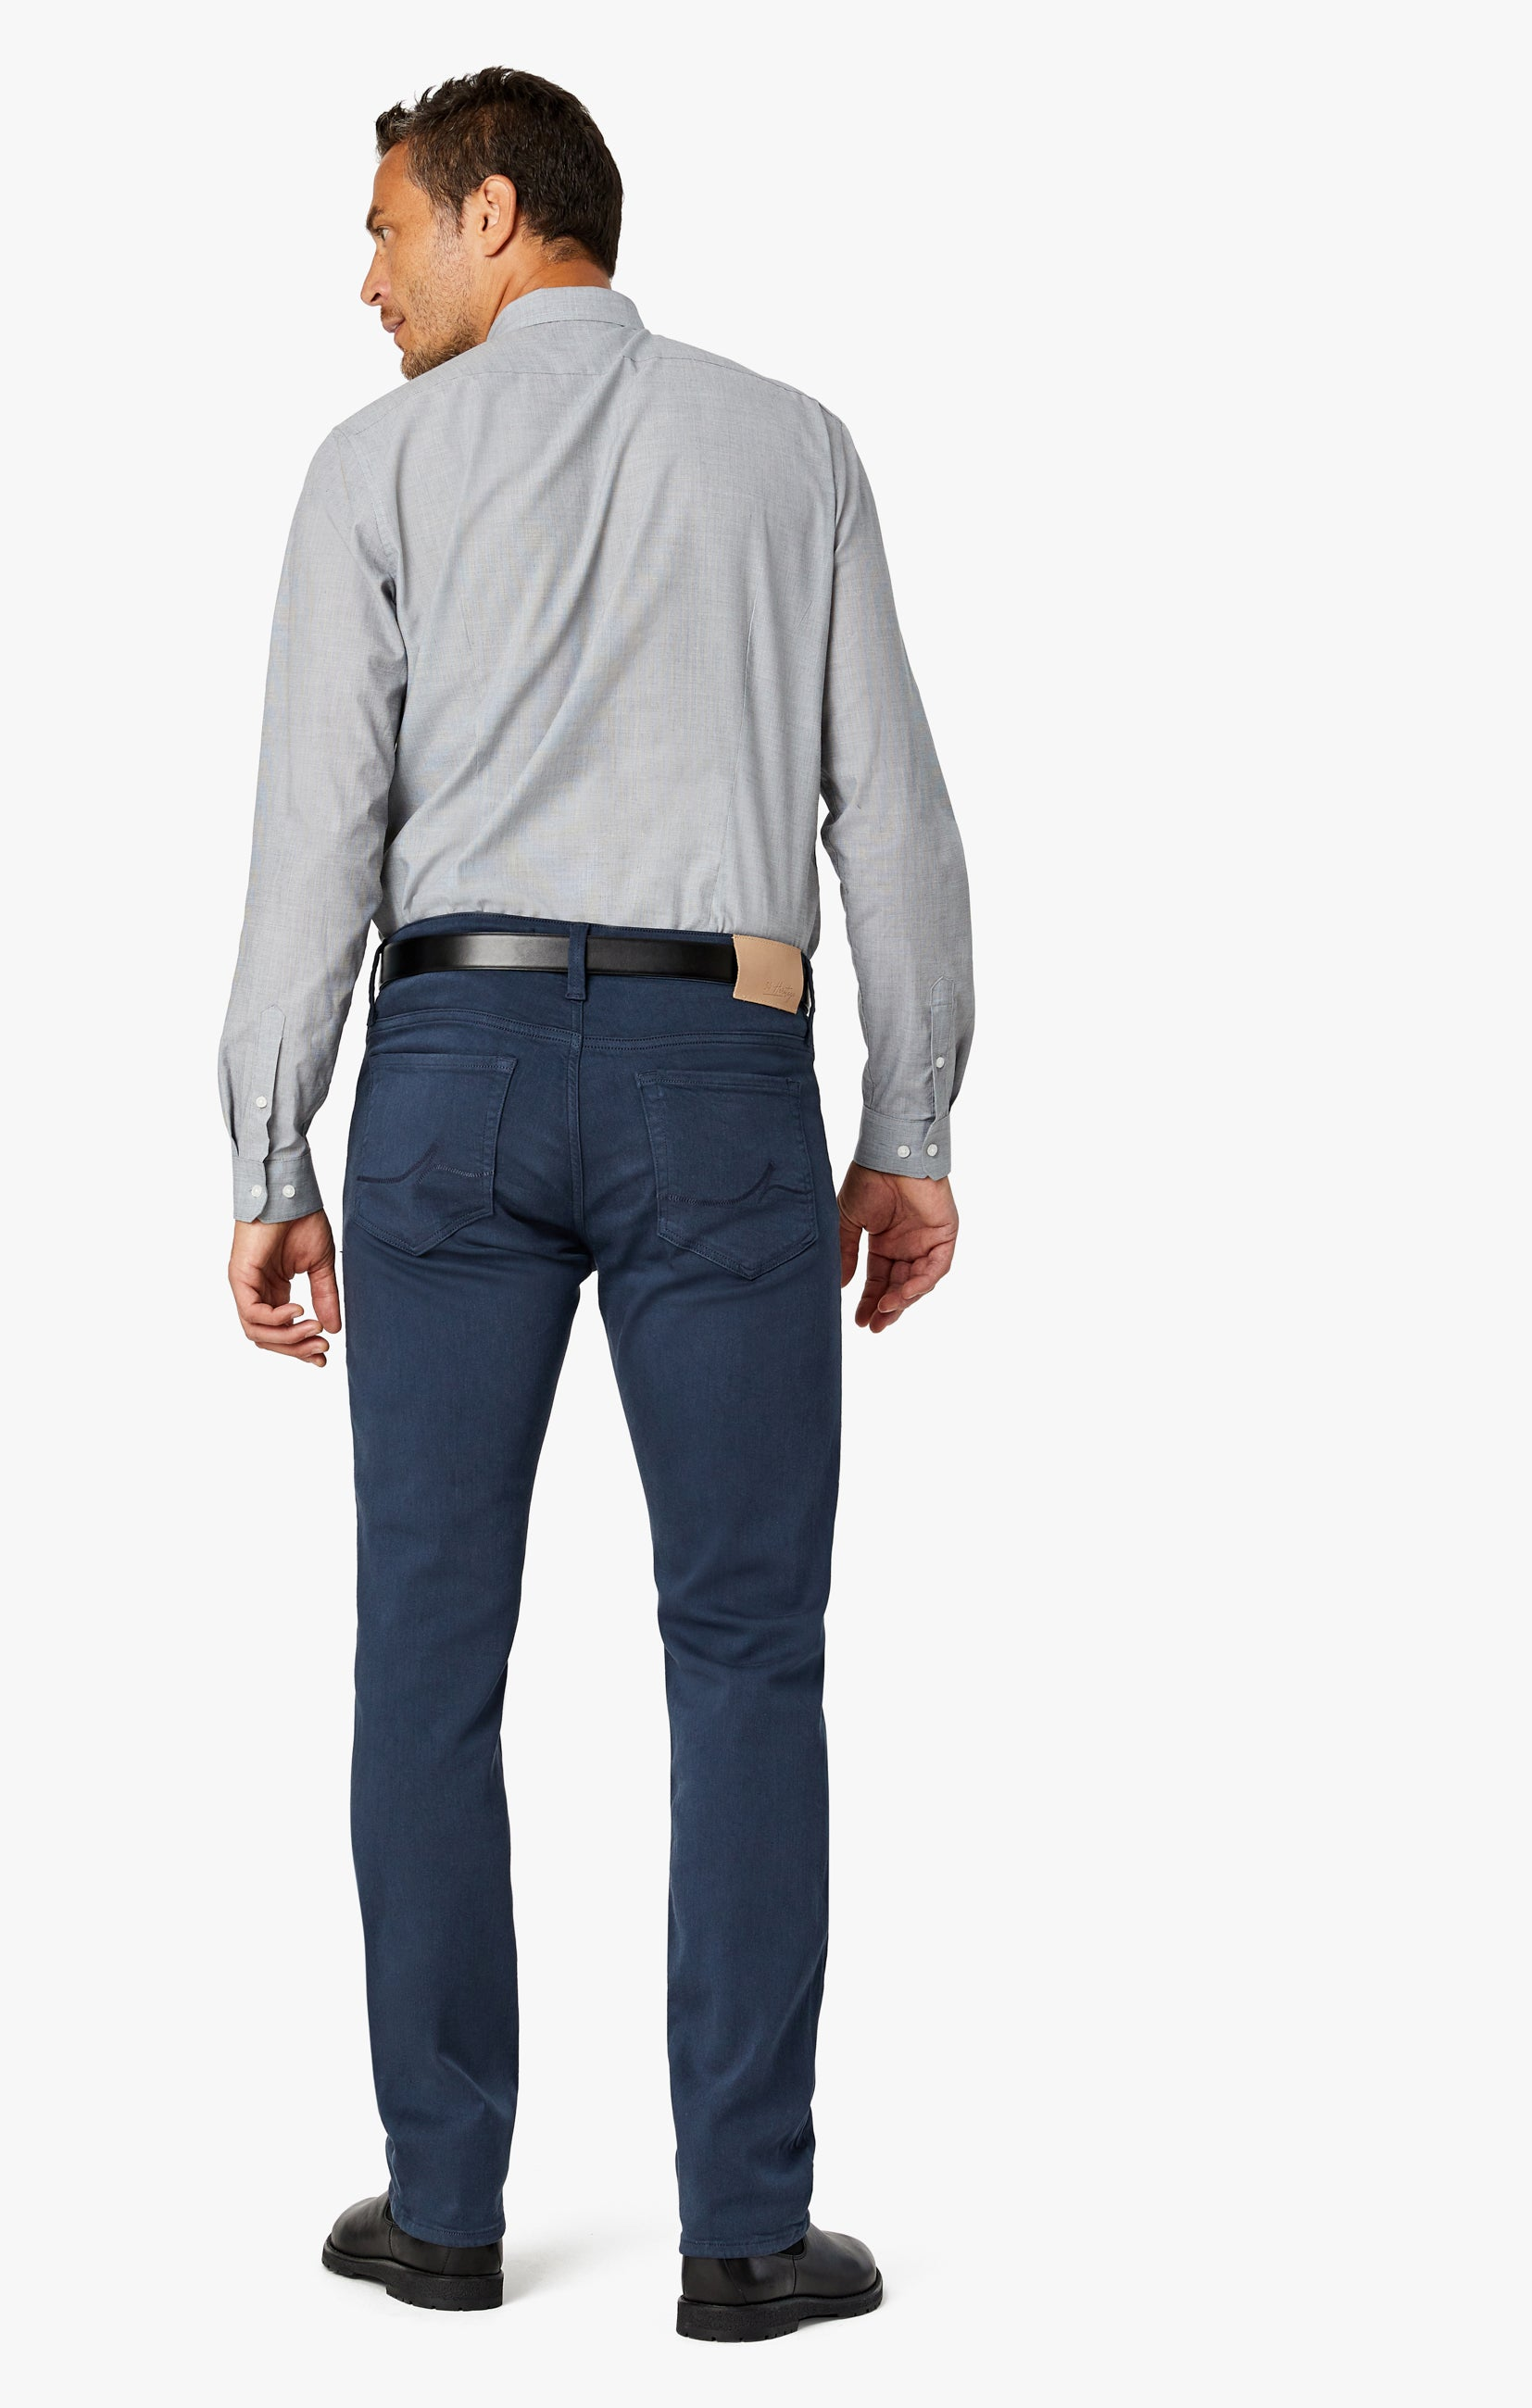 Charisma Relaxed Straight Pants In Dusty Navy Comfort Image 3